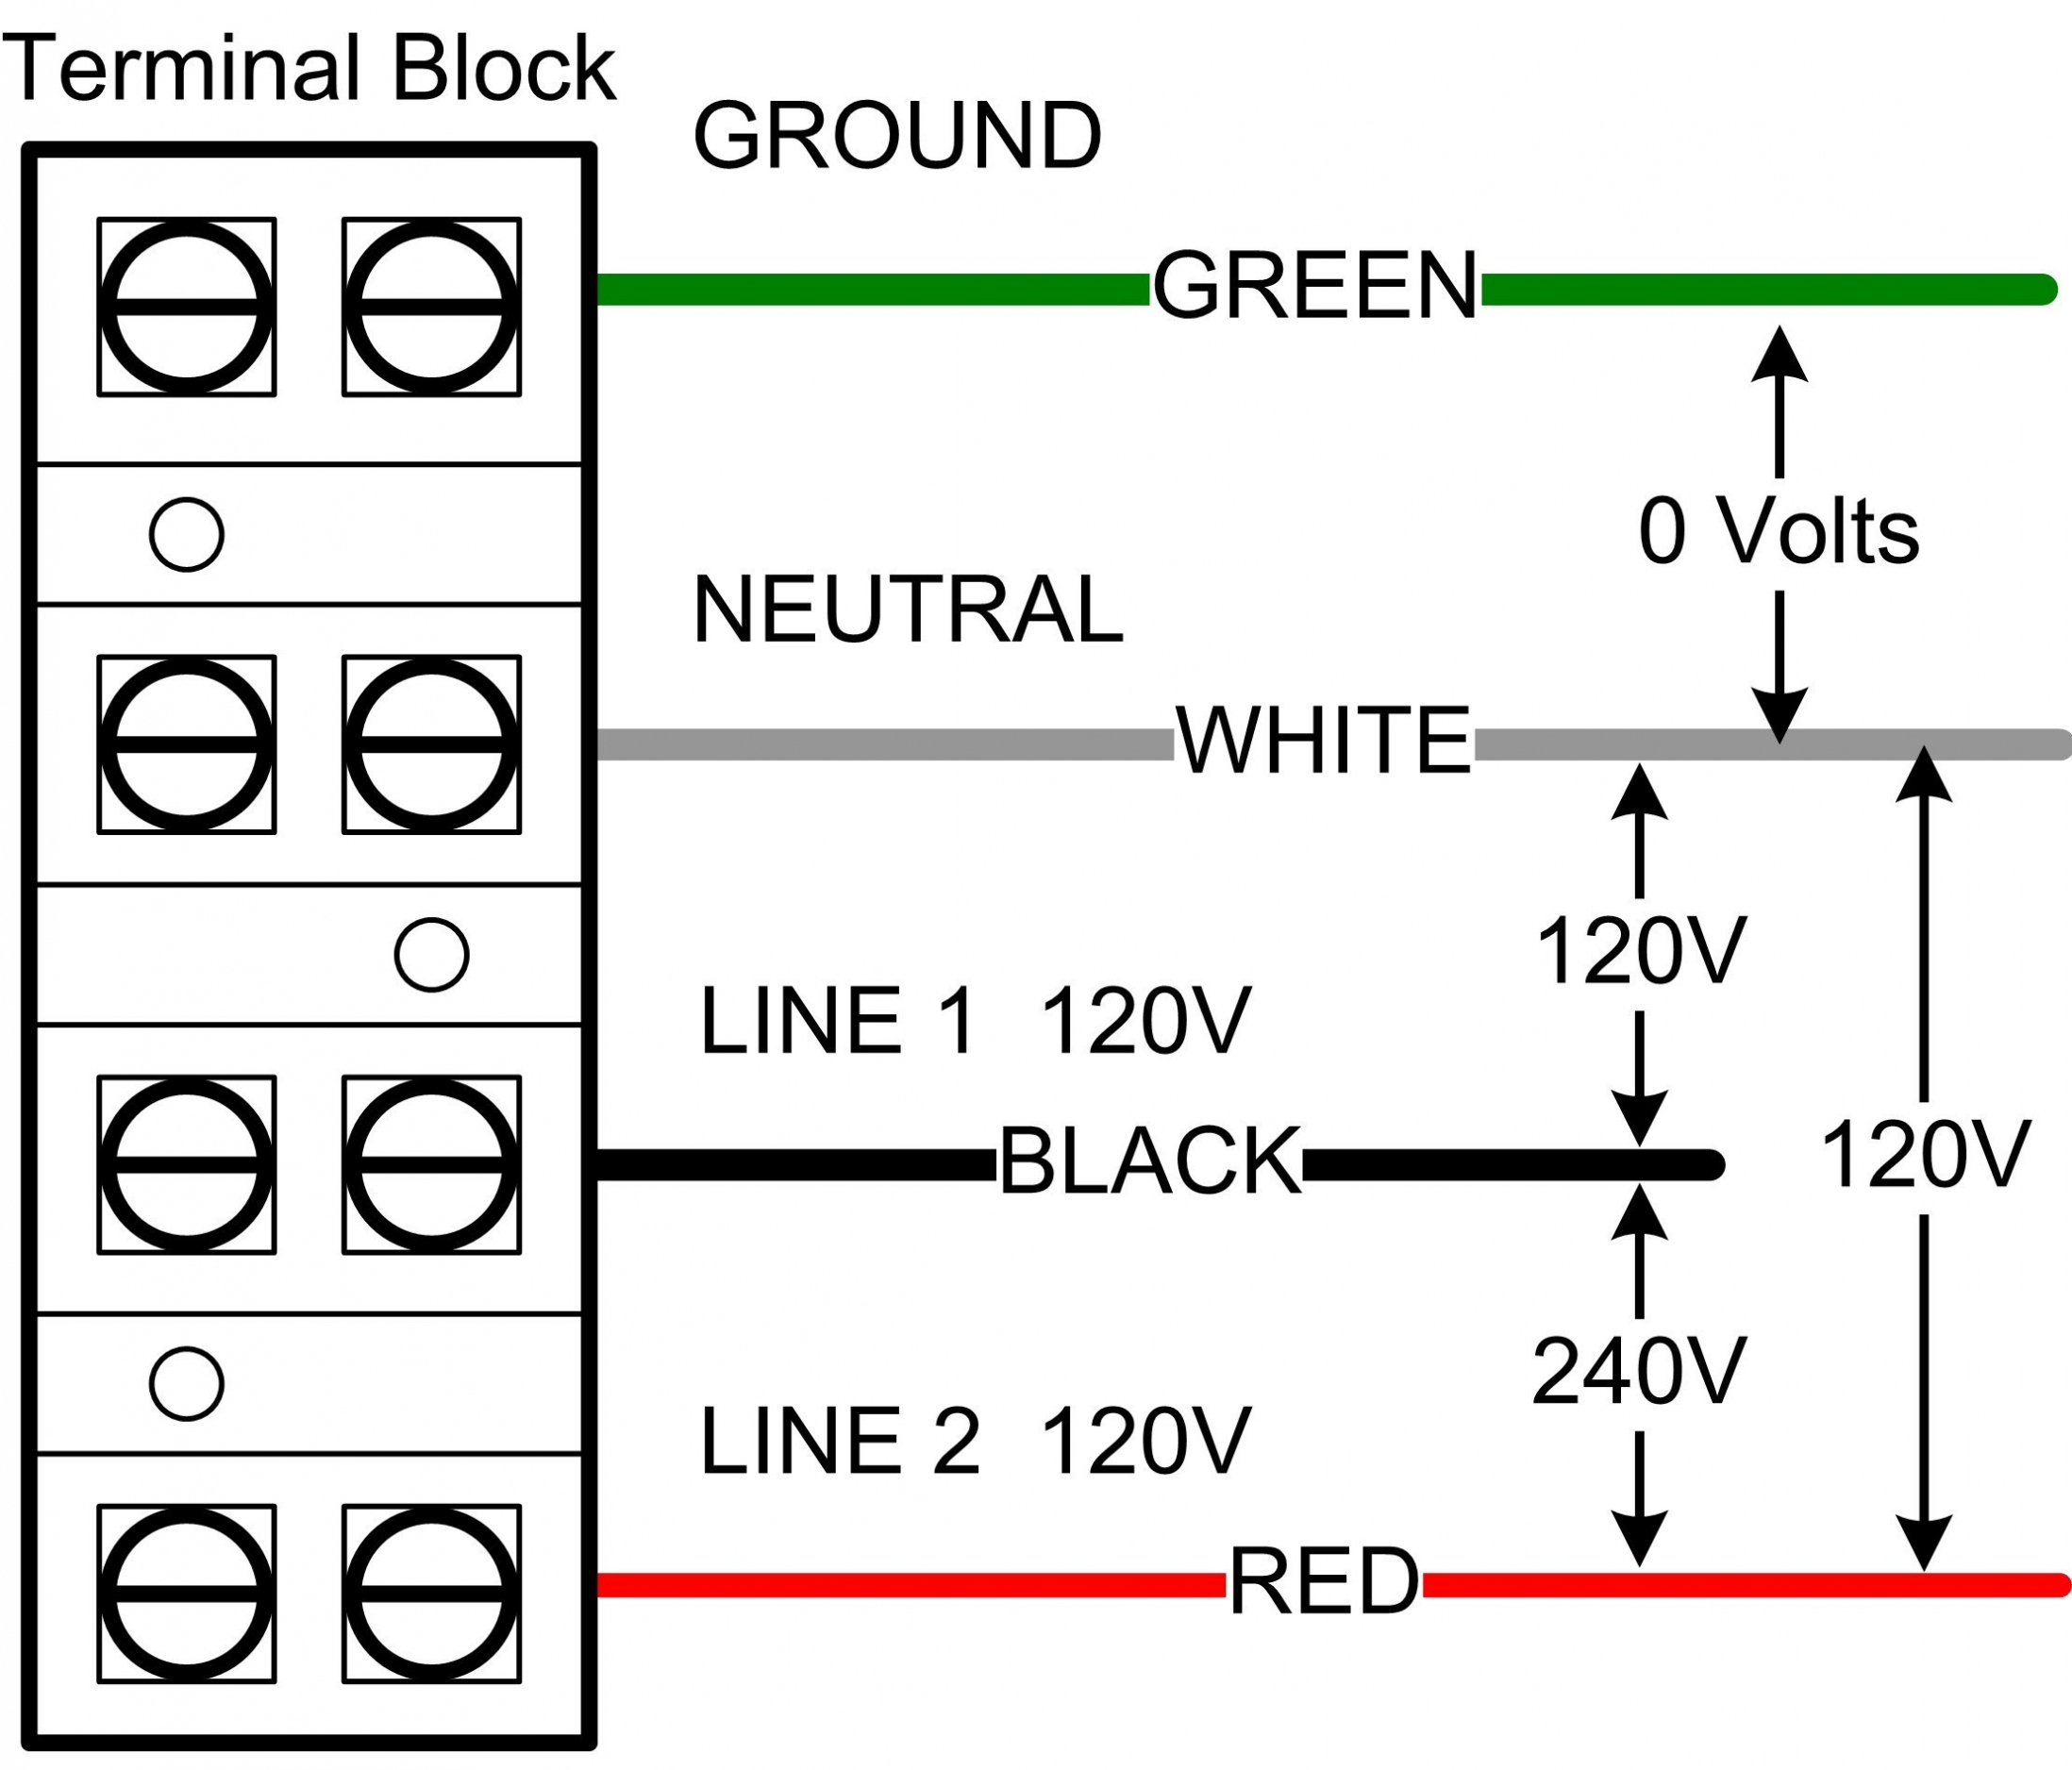 Wiring Diagram For Well Pump New Wiring Diagram For Jet Pump Best 3 - 3 Wire Well Pump Wiring Diagram